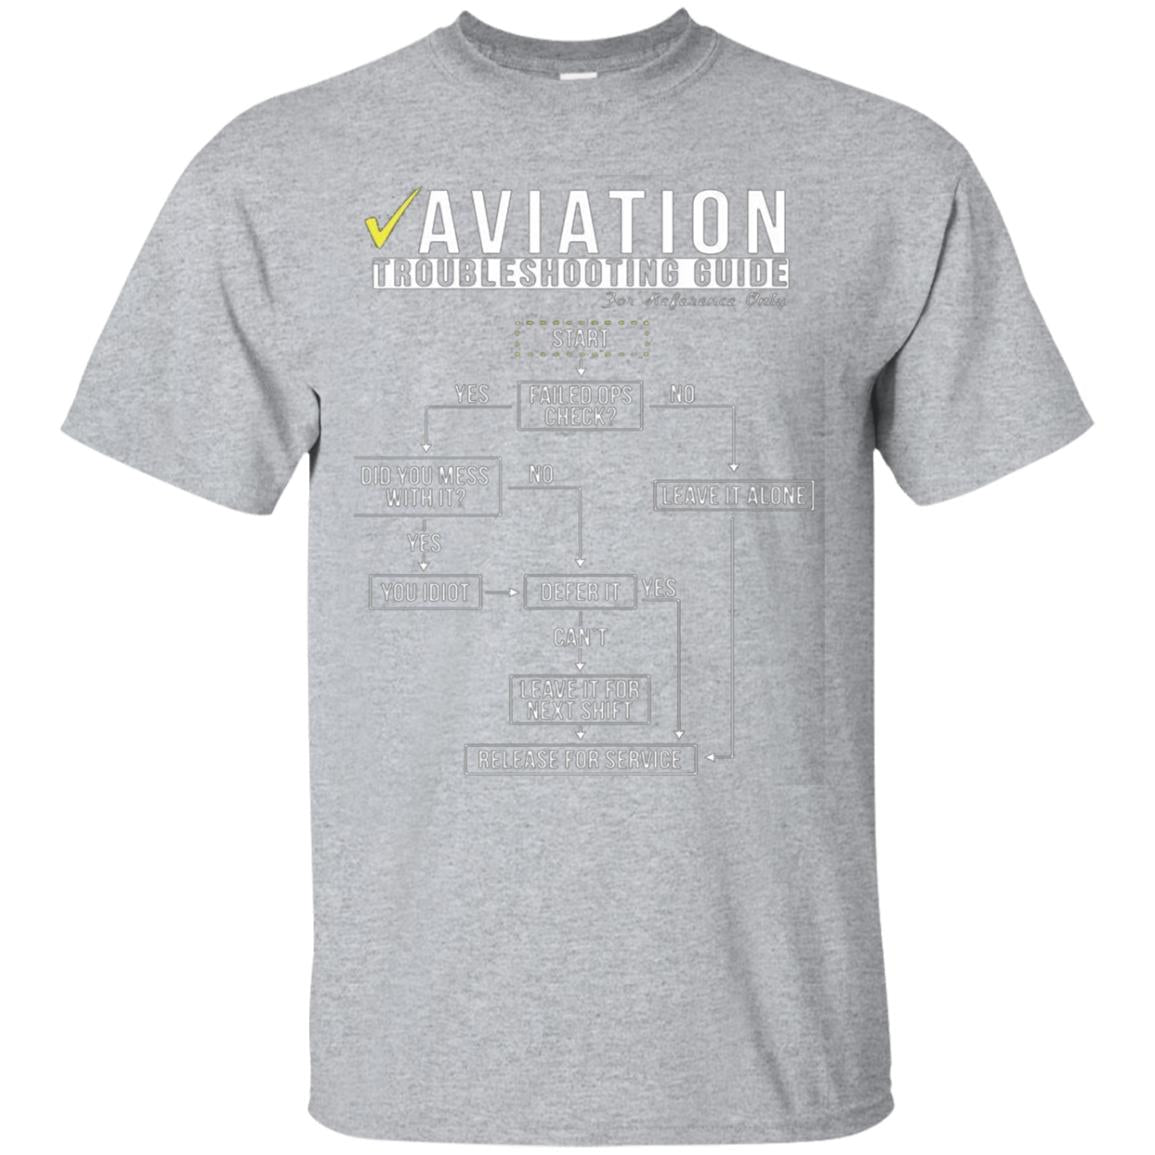 Best Gift Pilot Aviation Airman Flight Cool Sky Funny Shirts 99promocode